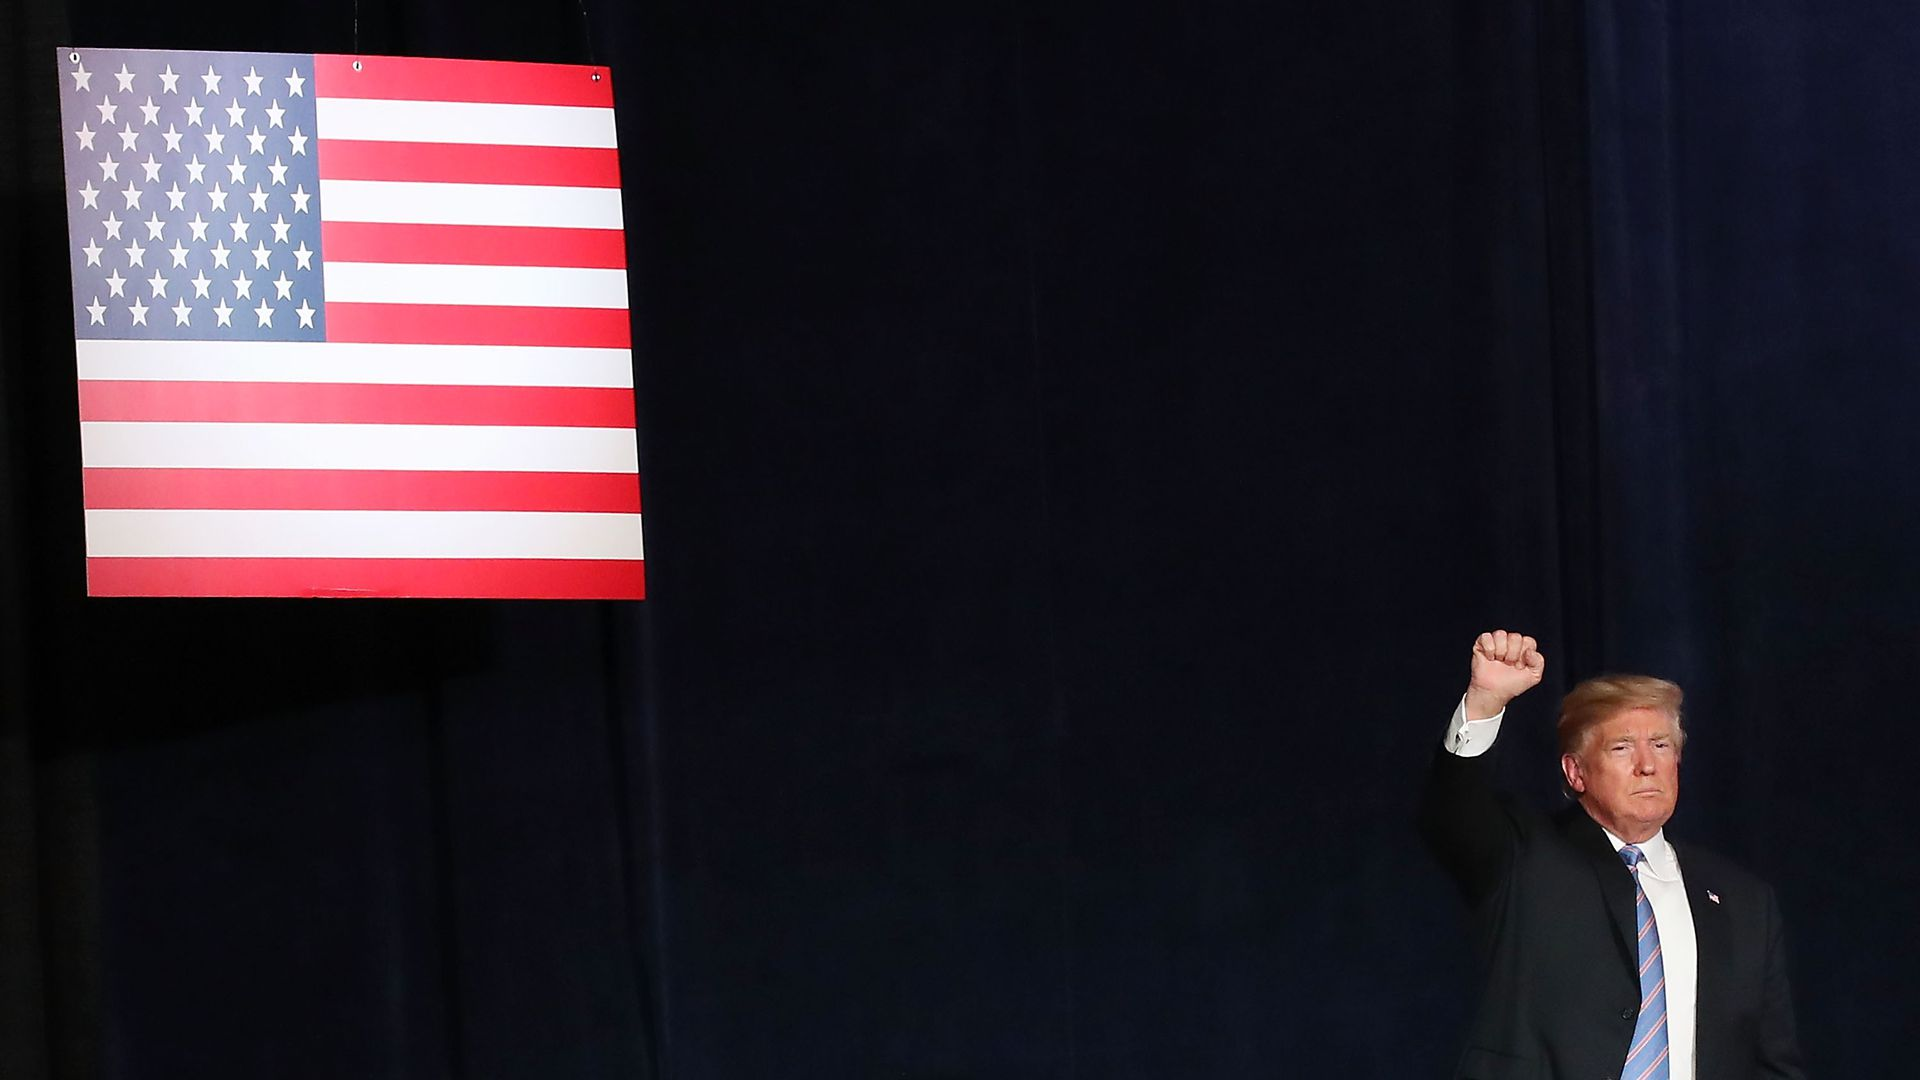 Donald Trump raises his arm in a fist before a navy blue background and an American flag.